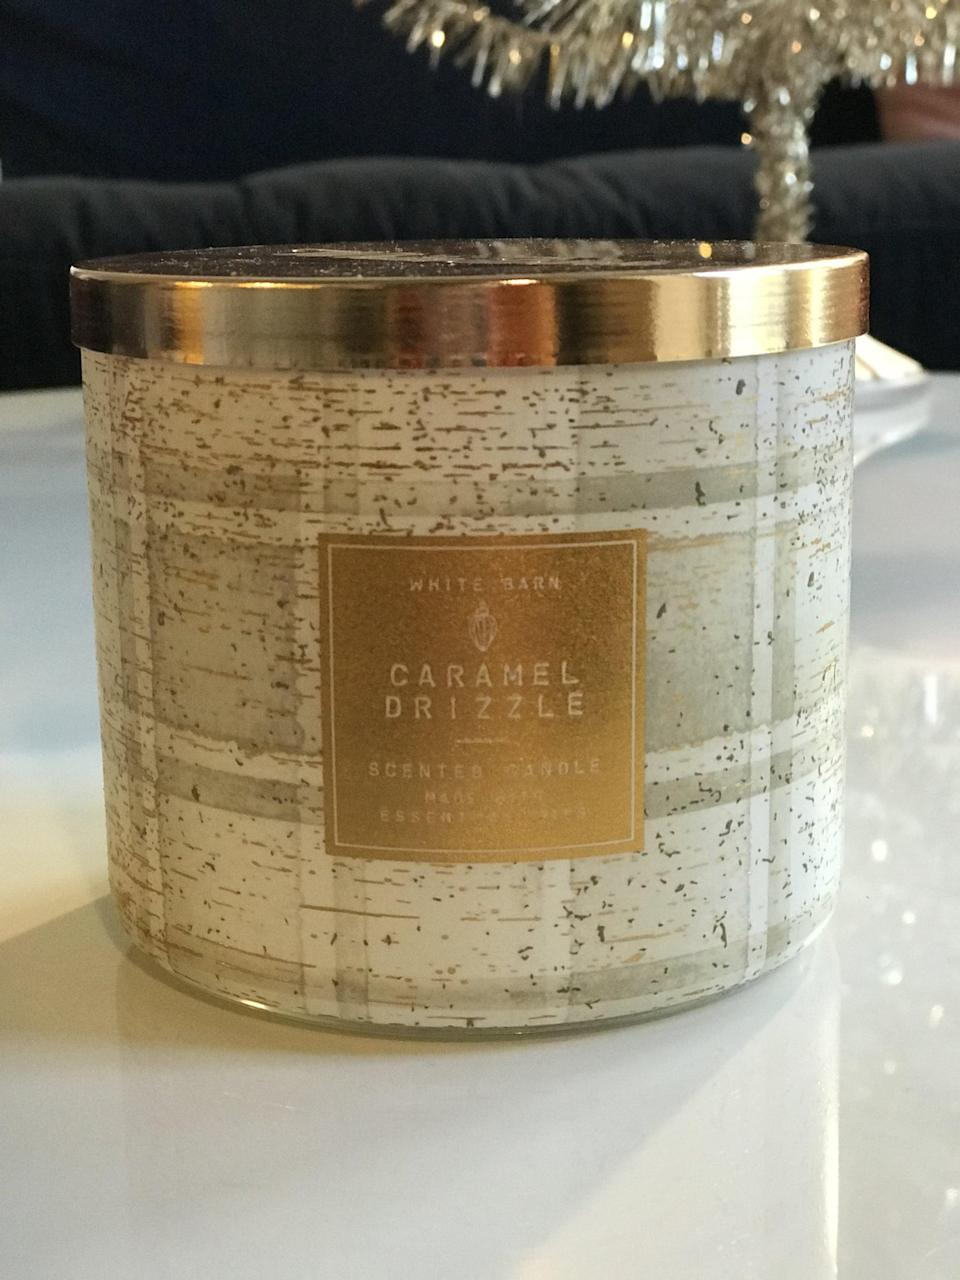 <p><span>Caramel Drizzle 3-Wick Candle</span> ($15, originally $25)</p> <p><strong>What It Smells Like:</strong> If you were to swirl hot caramel and melted butter together. </p>